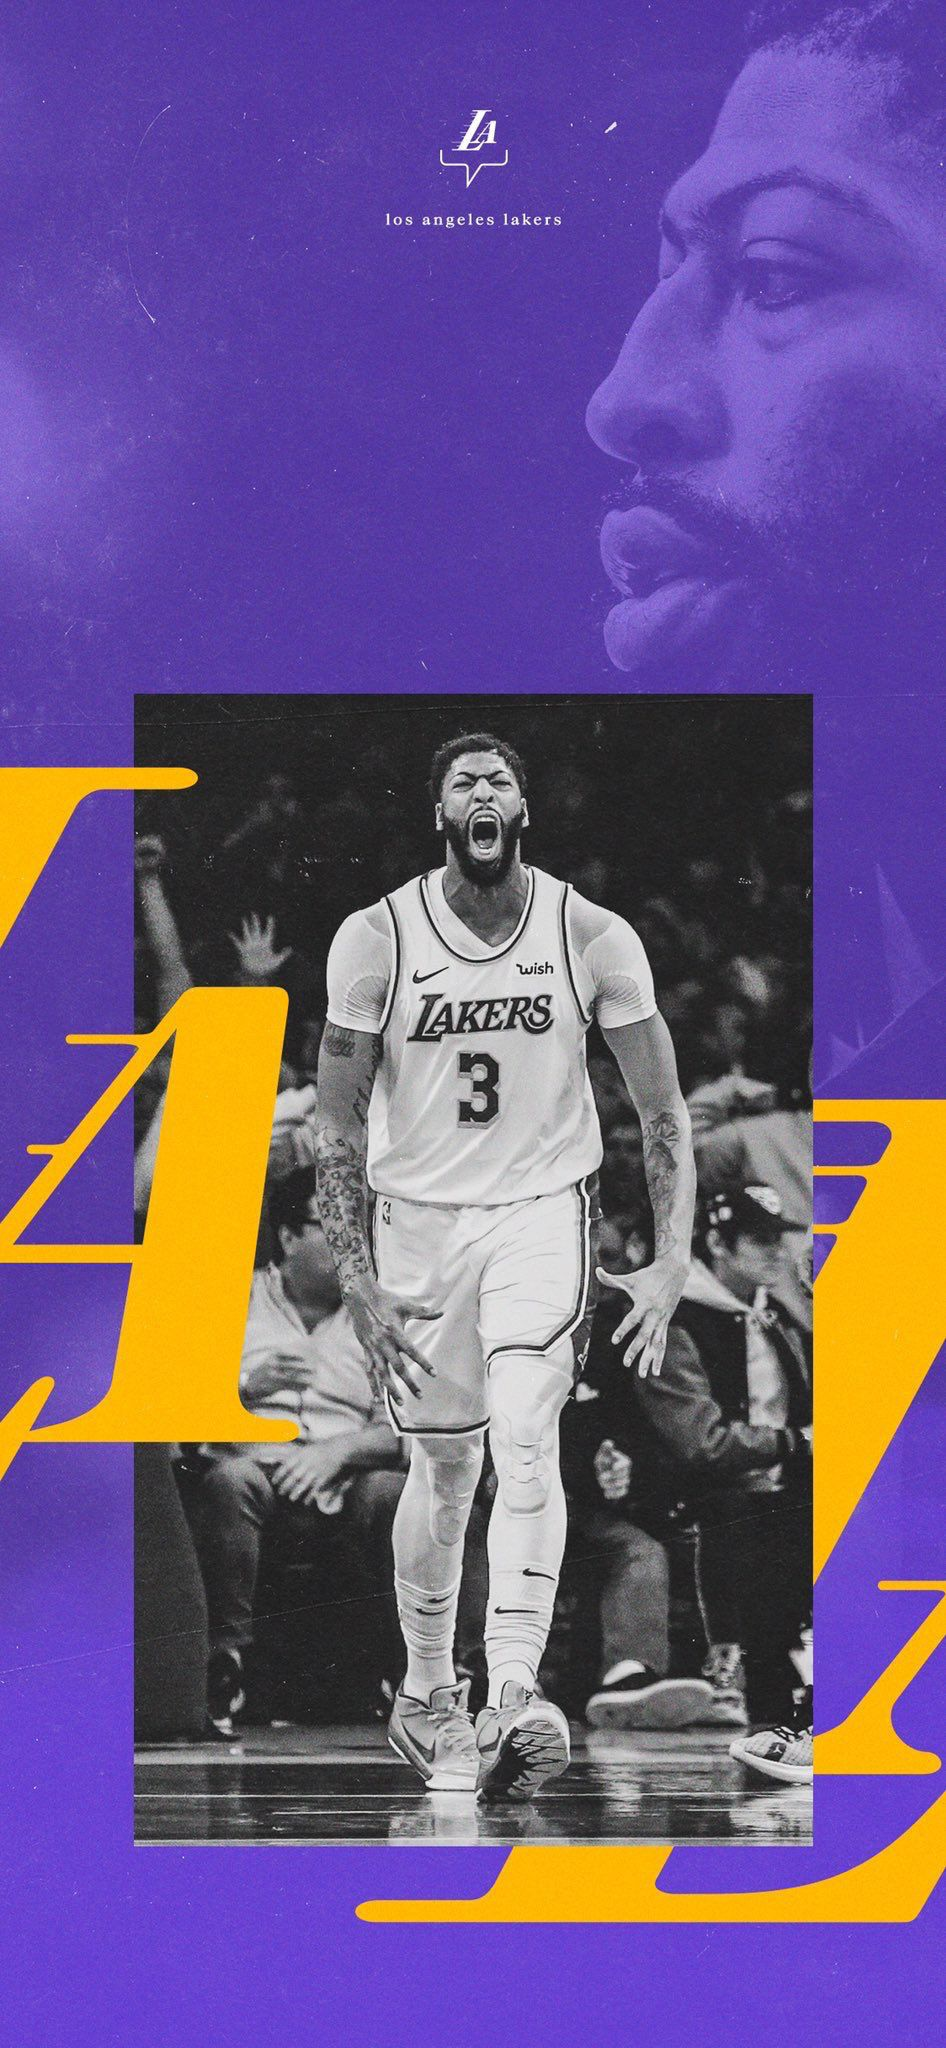 Pin by Dave Broberg on Sports Design Pt. 3 | Lakers ...